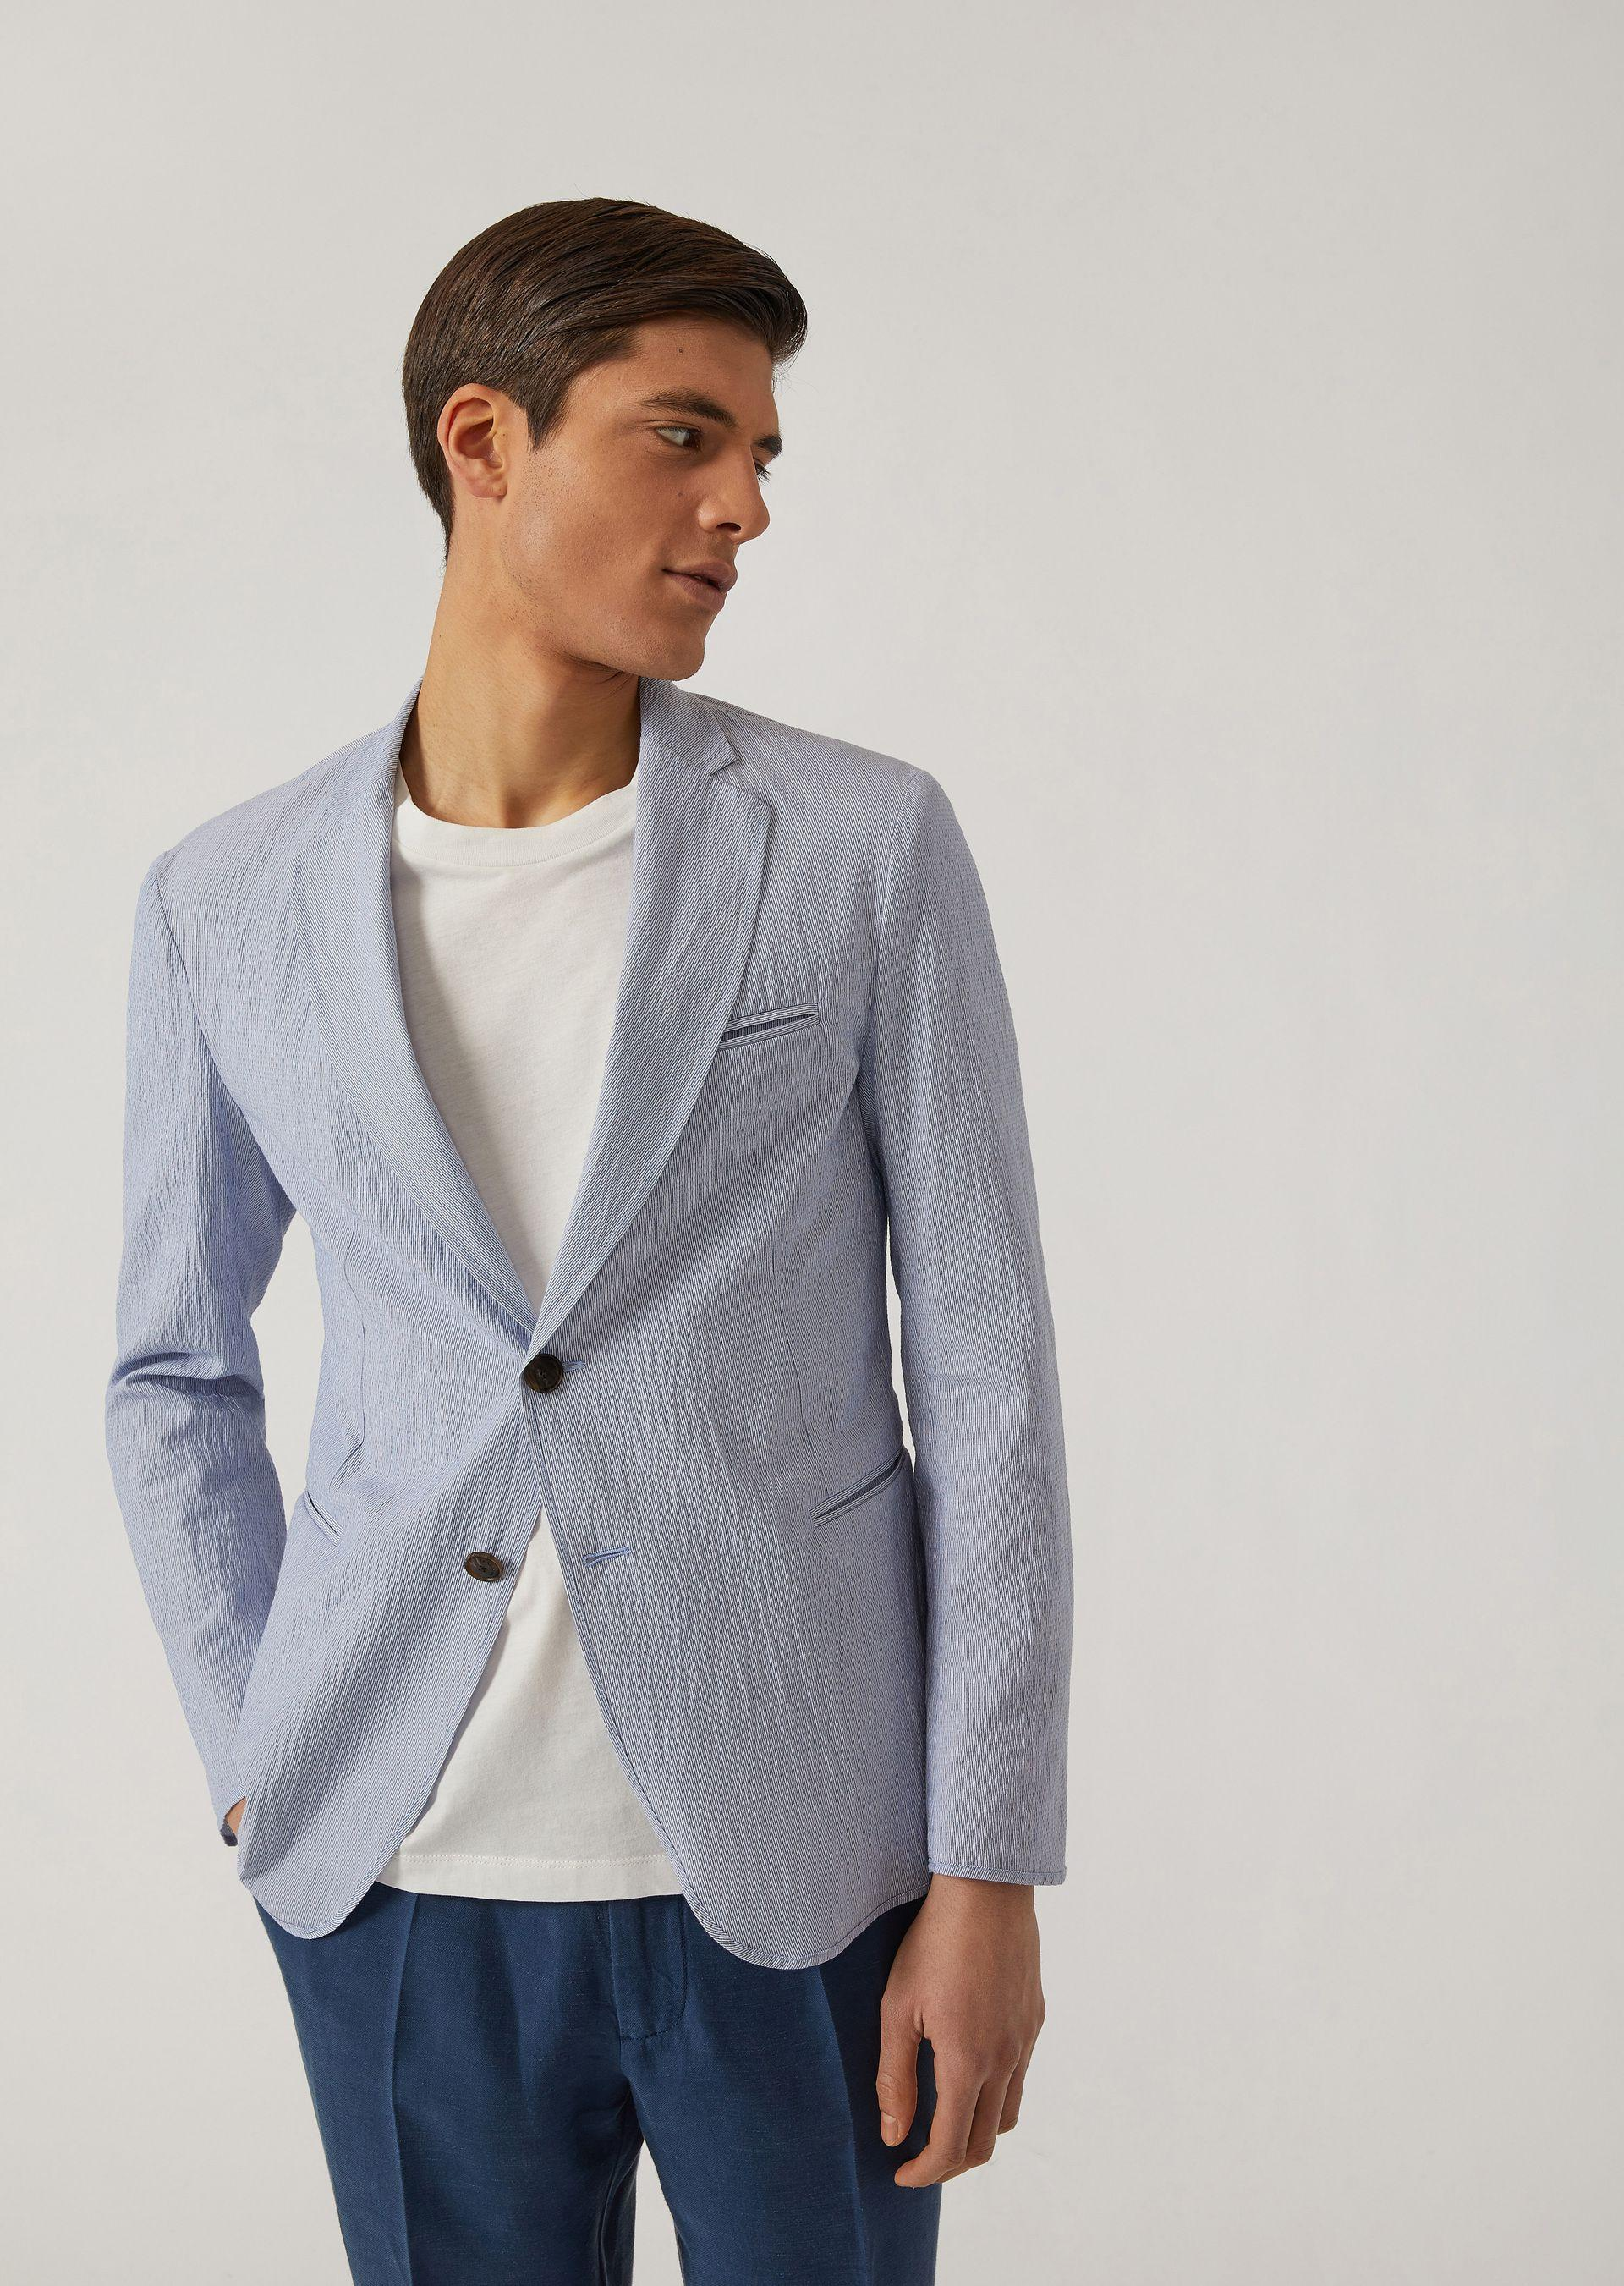 Emporio Armani Casual Jackets - Item 41789361 In Blue